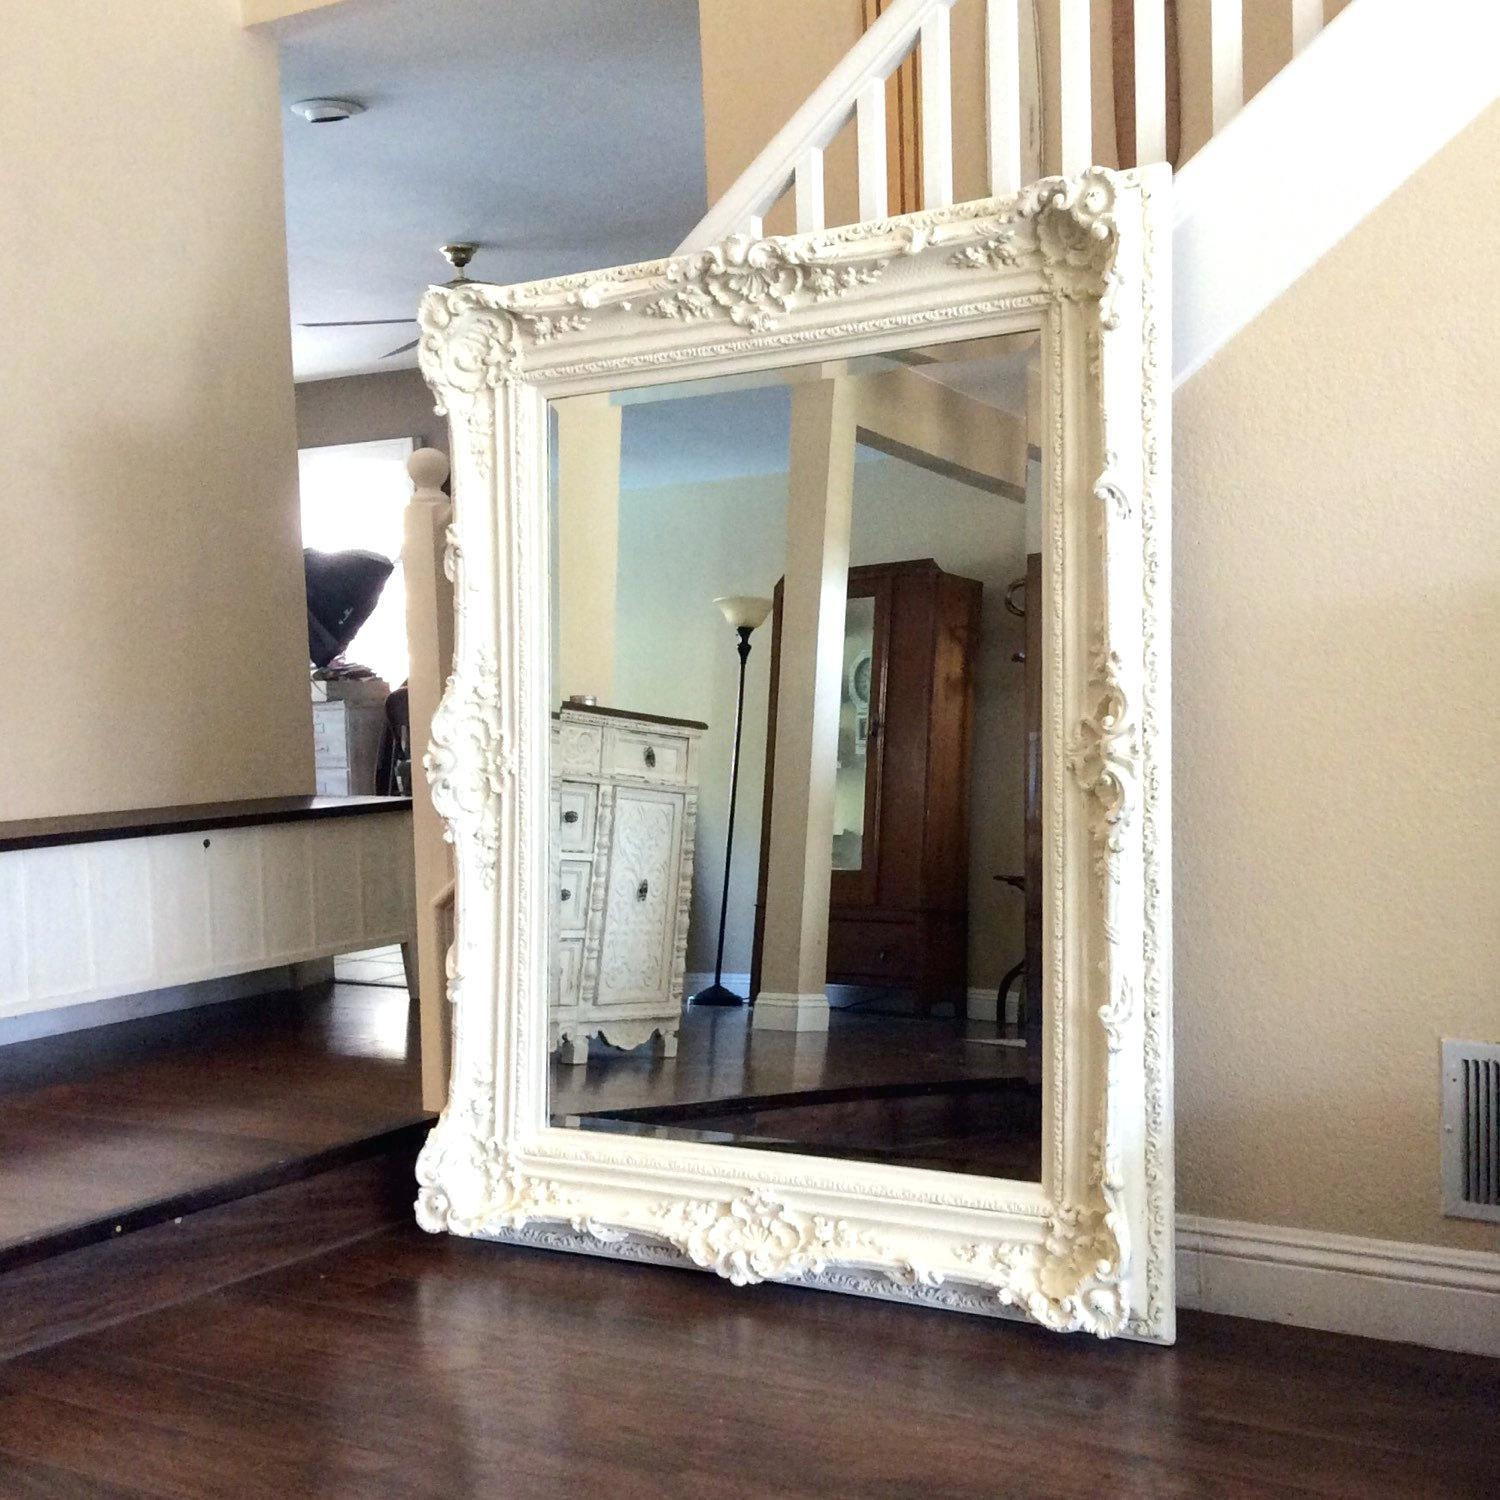 Shabby Chic White Mirror – Shopwiz With Regard To Ornate Mirrors For Sale (Image 19 of 20)